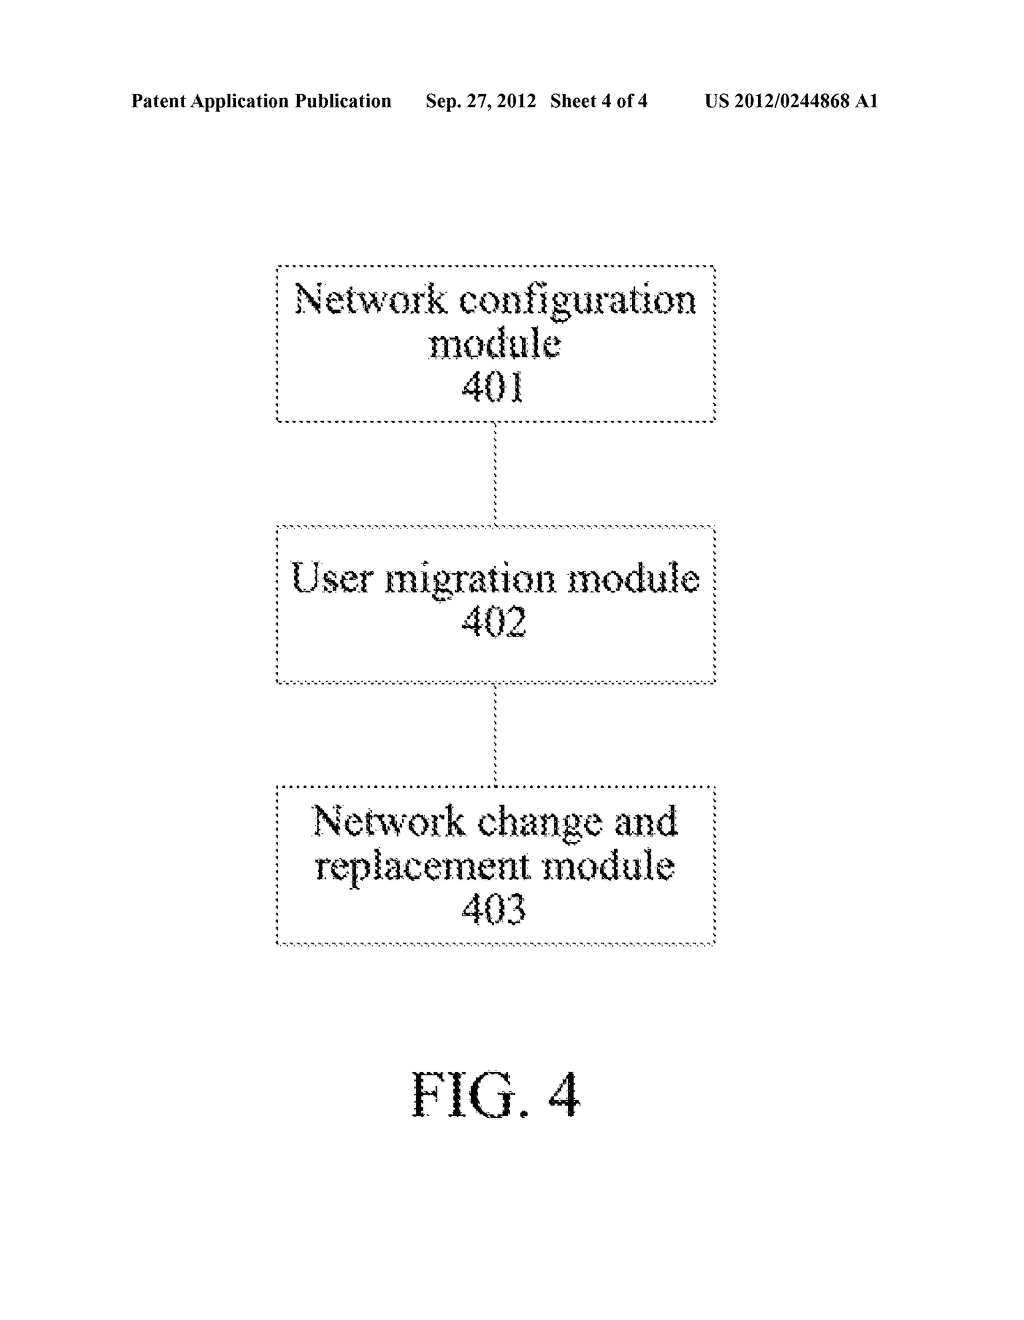 Method and Apparatus for Replacing Wireless Network Based on Equivalent     Public Land Mobile Network (EPLMN) - diagram, schematic, and image 05